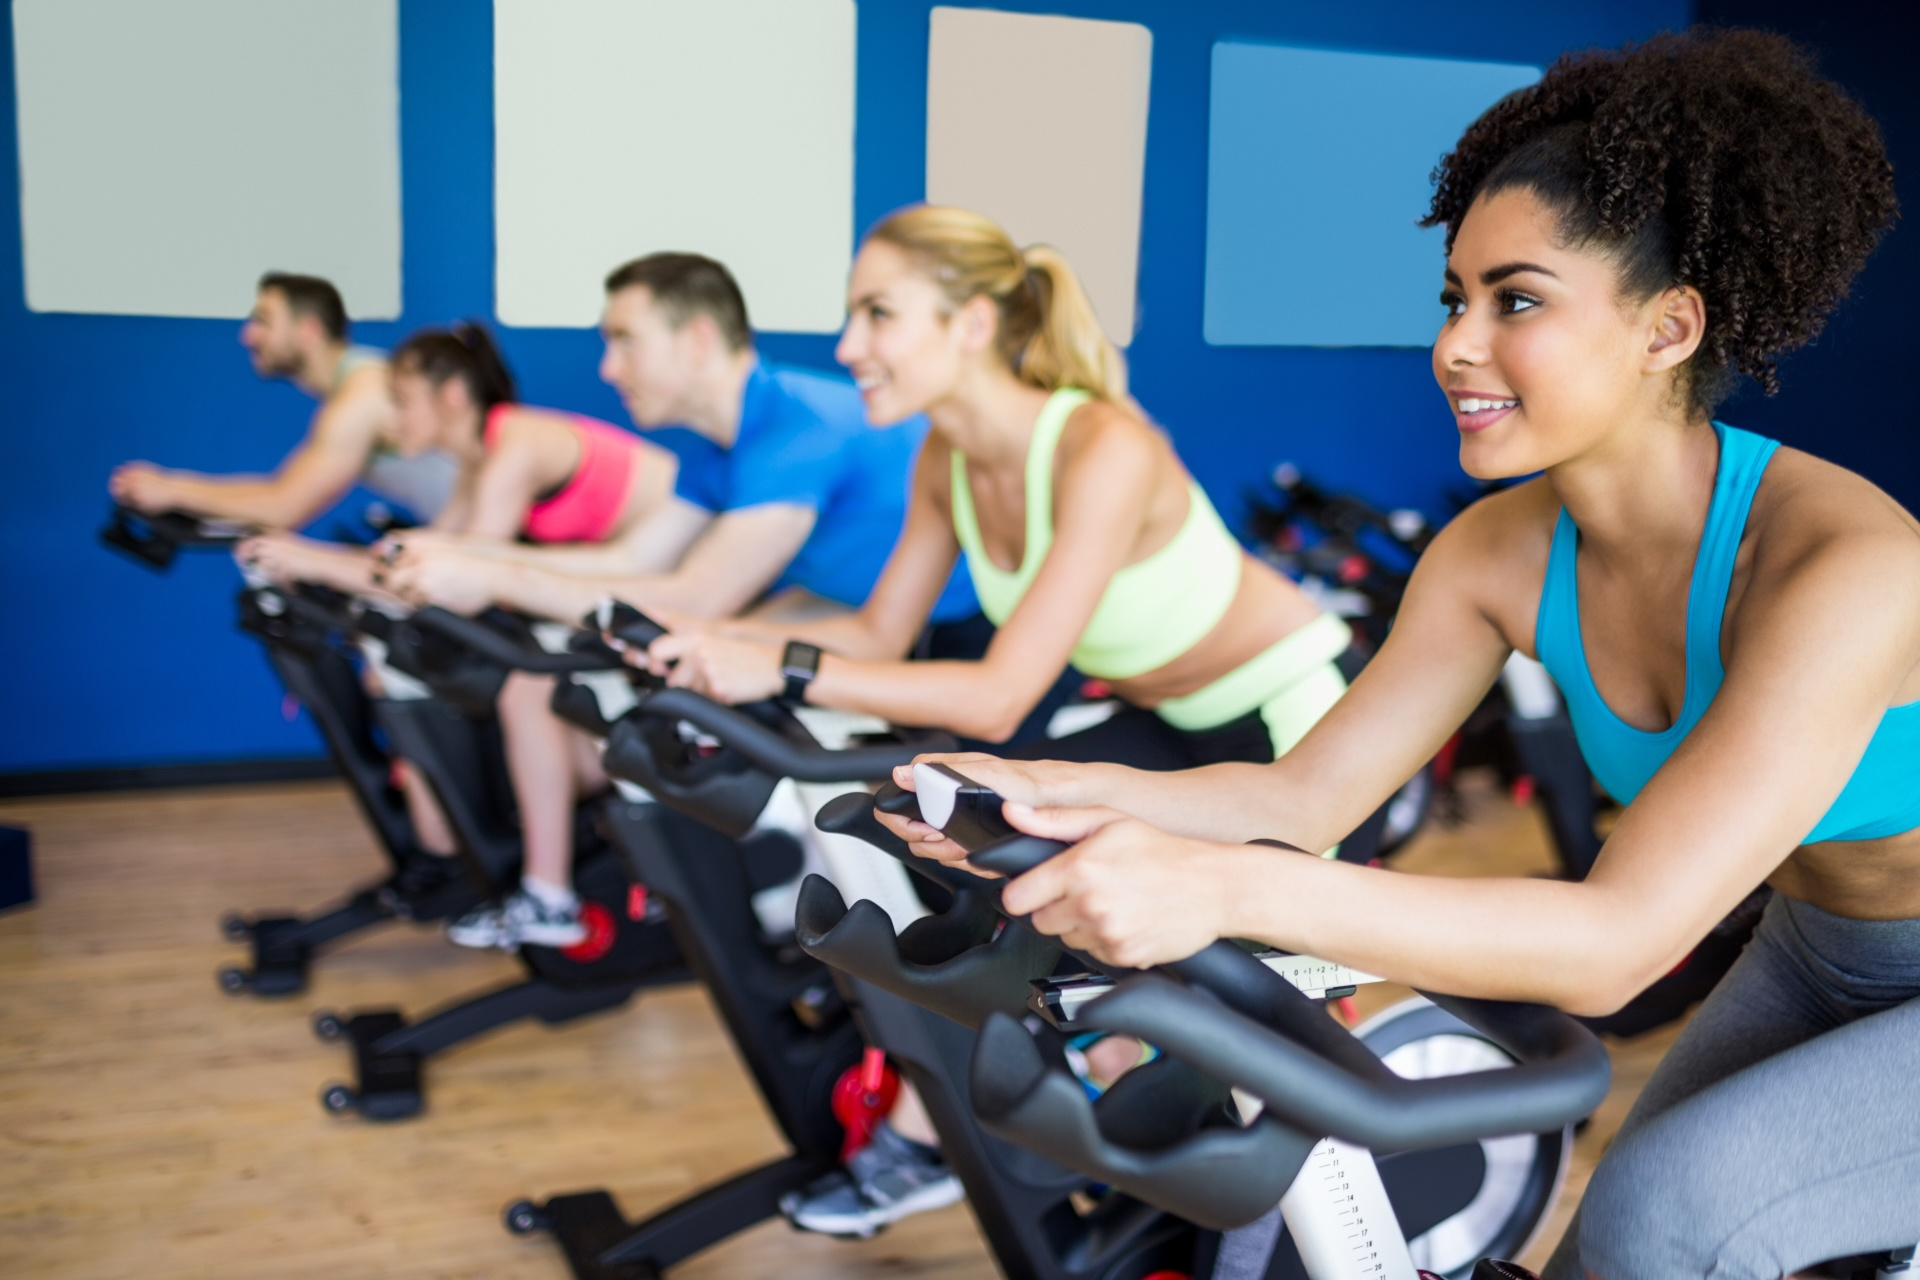 4 Reasons to Take Spinning Classes in Philadelphia